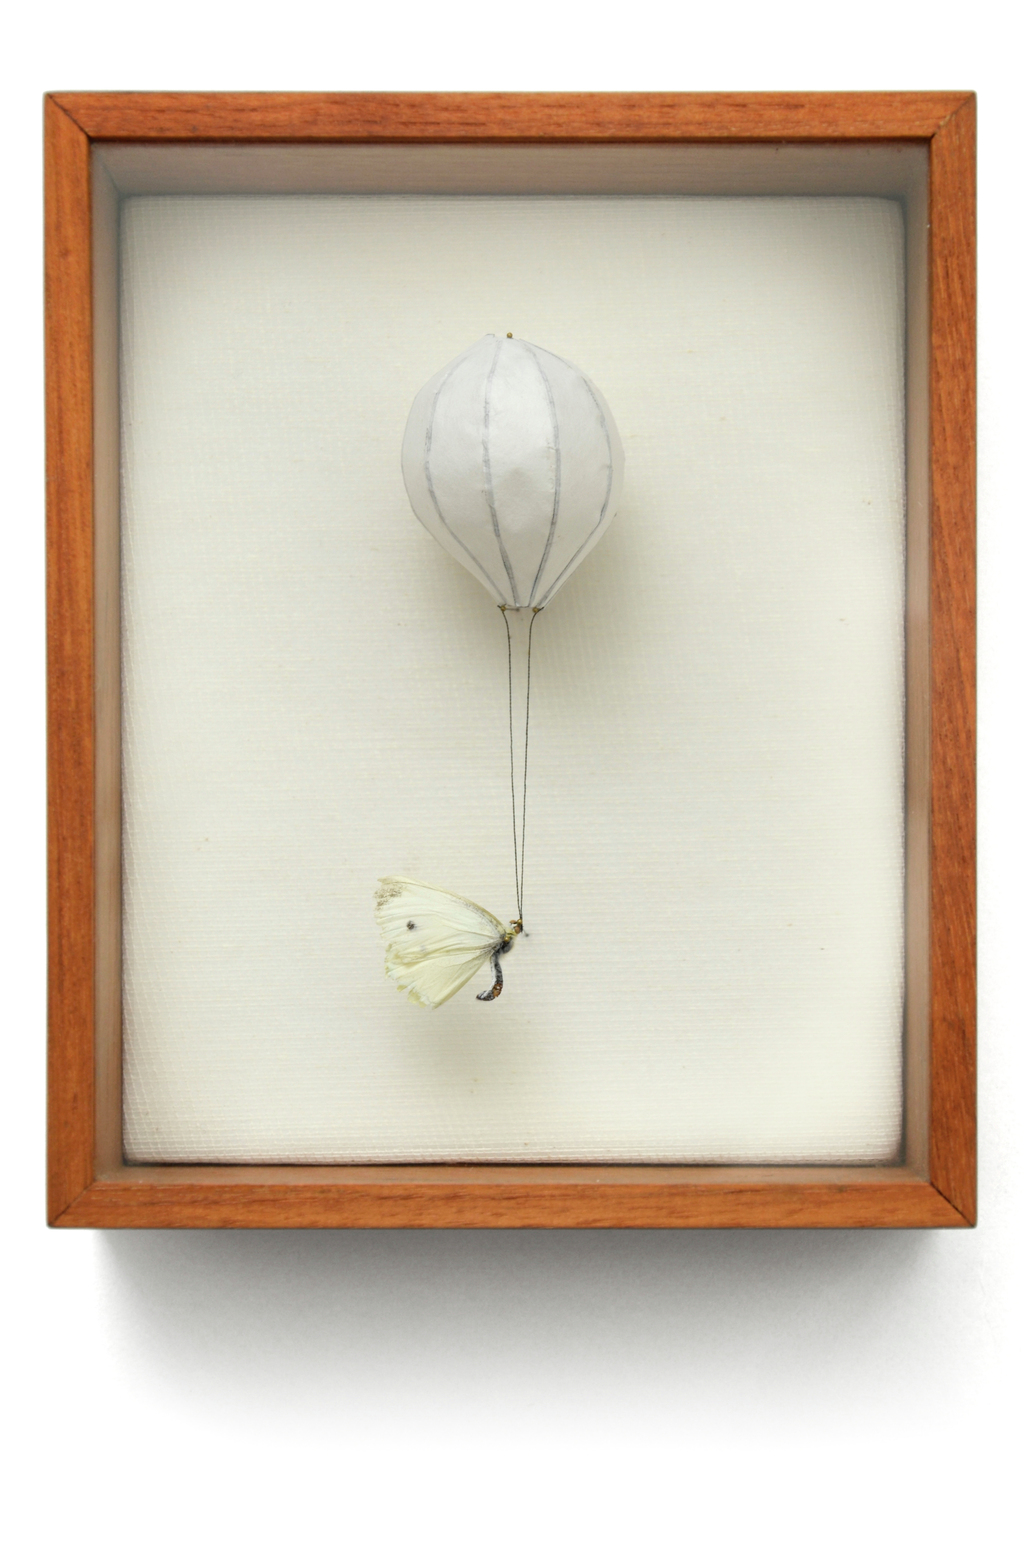 """White Air"" has a balloon filled up with white air. It helps the little butterfly to rice up. (w:14 h:17 d:5.5 cm)"